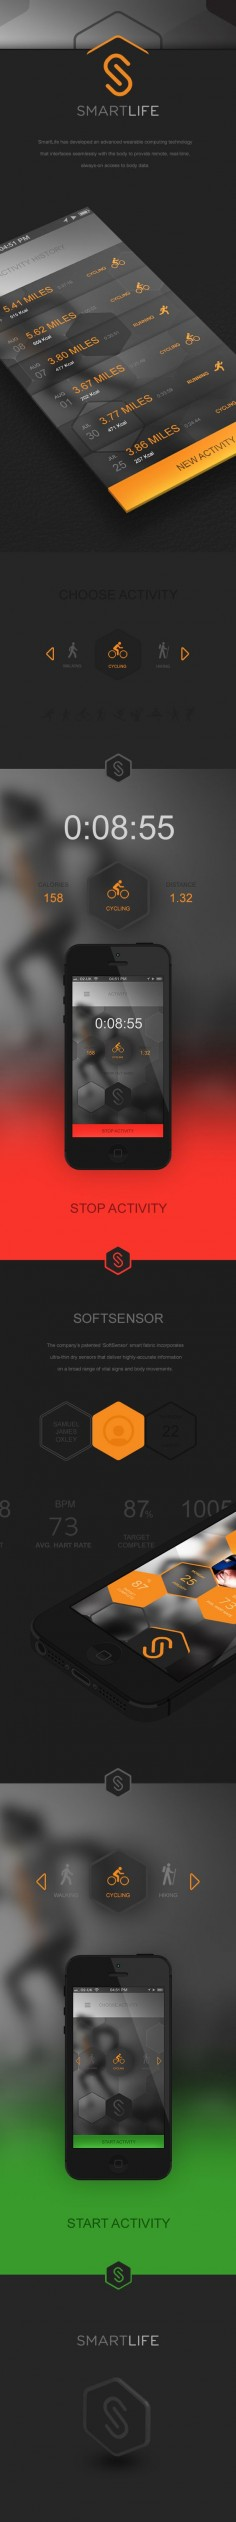 SmartLife Sports App by Samuel James Oxley, via Behance